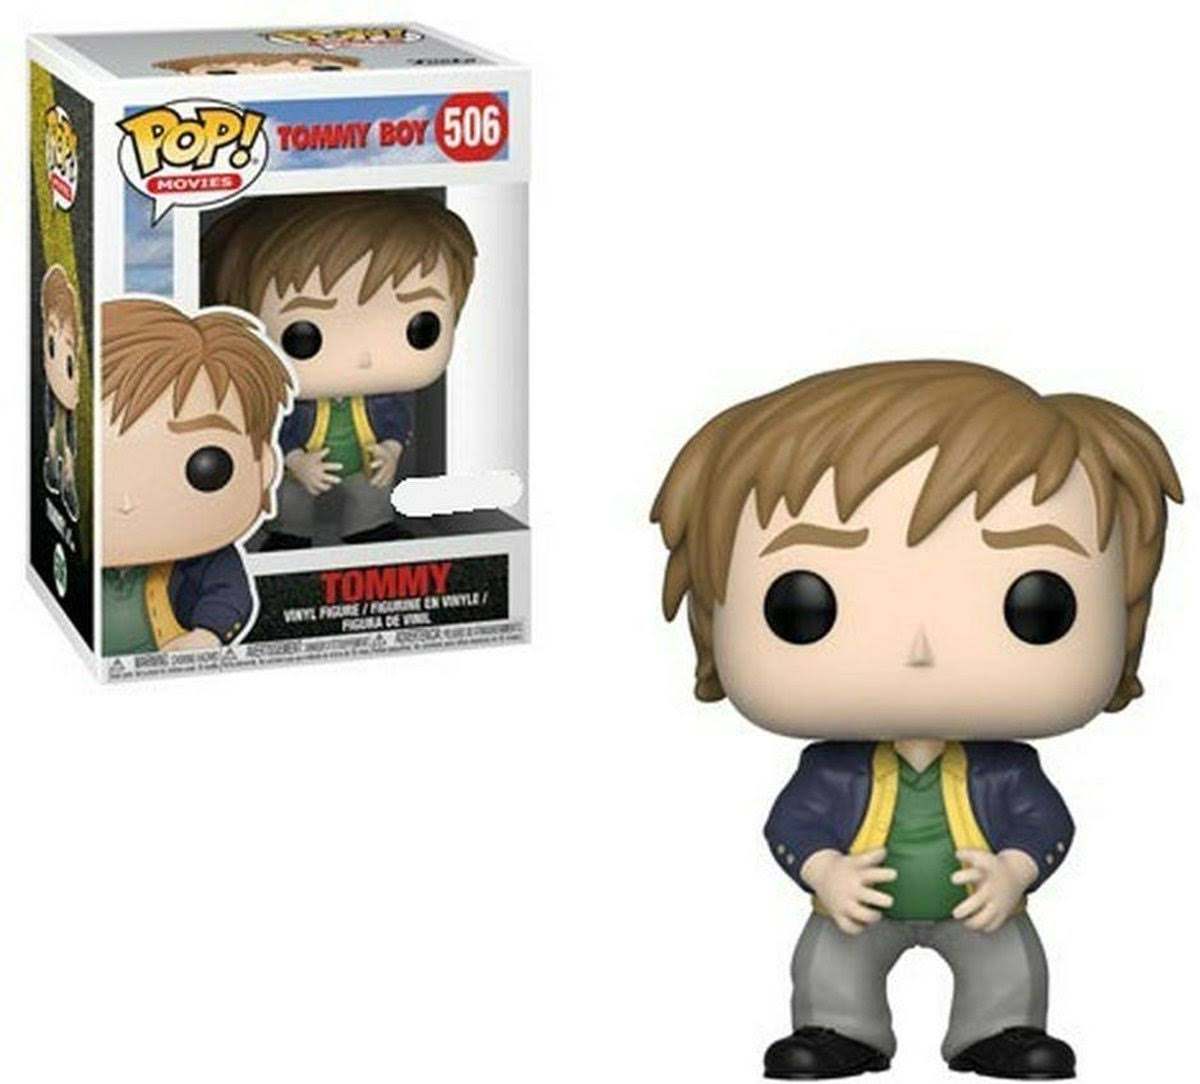 Funko Pop Tommy Boy Tommy with Ripped Coat US Exclusive Vinyl Figure